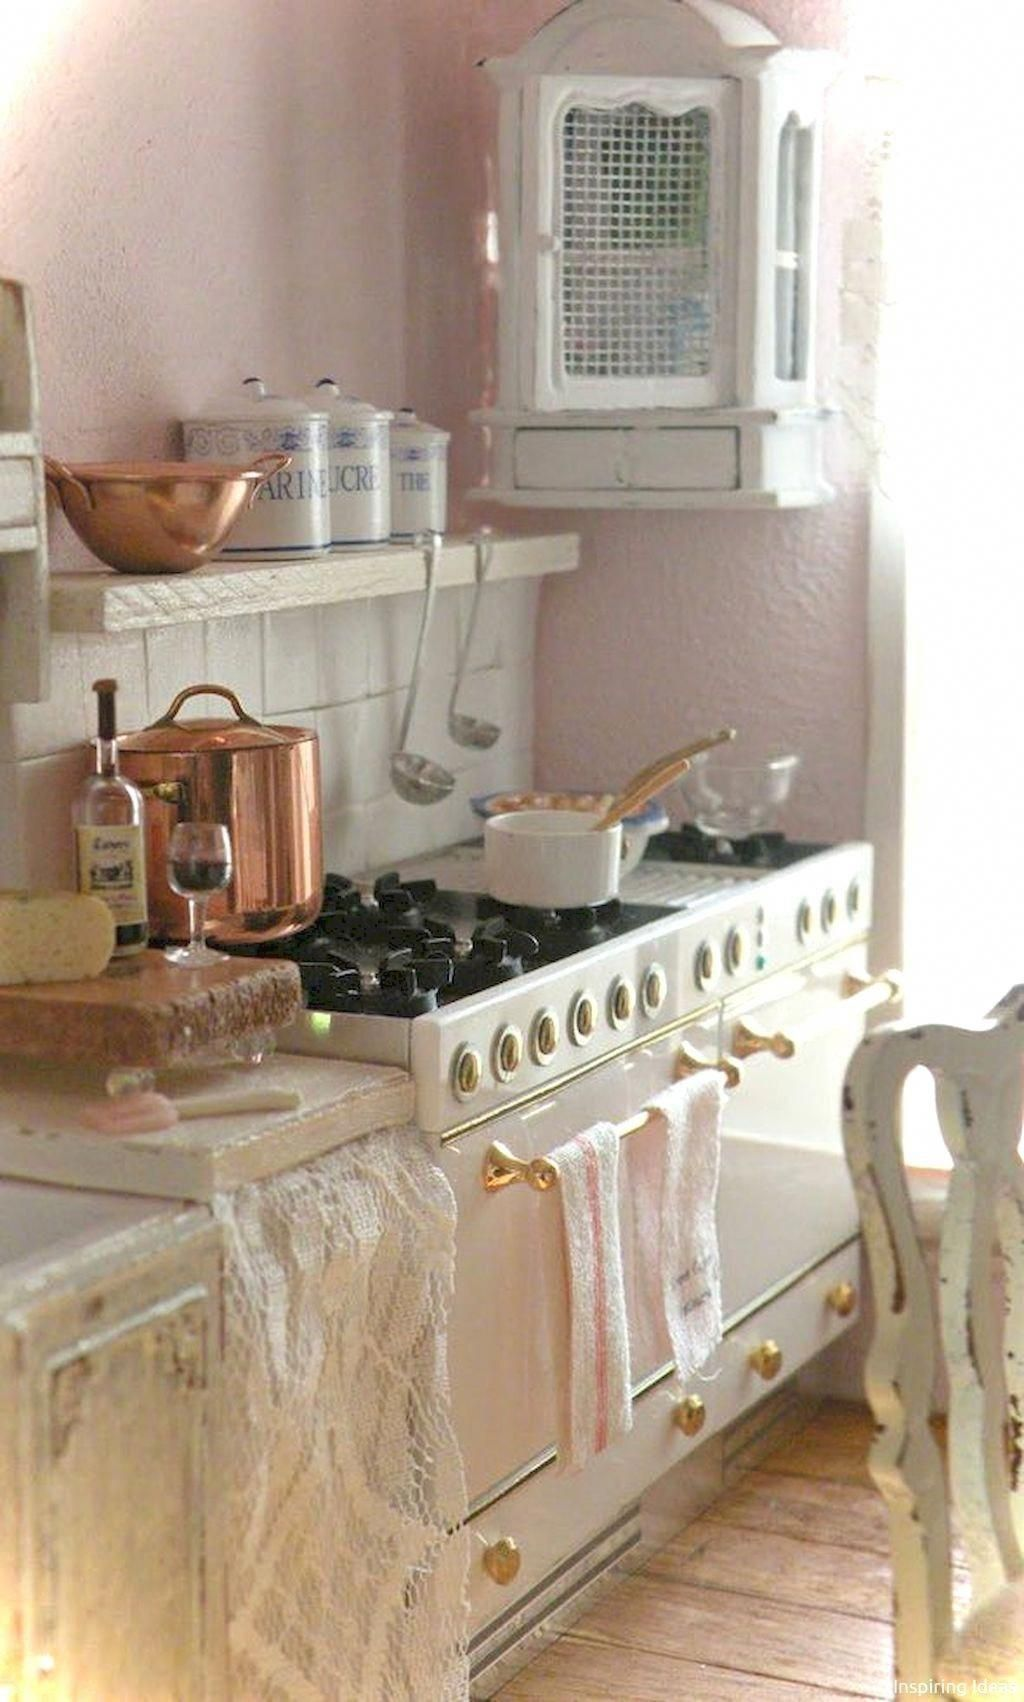 54 Littlel Kitchen Ideas French Country Style Kitchens Kitchendesign Kitchenideas K Shabby Chic Kitchen Shabby Chic Furniture Diy Shabby Chic Nursery Decor